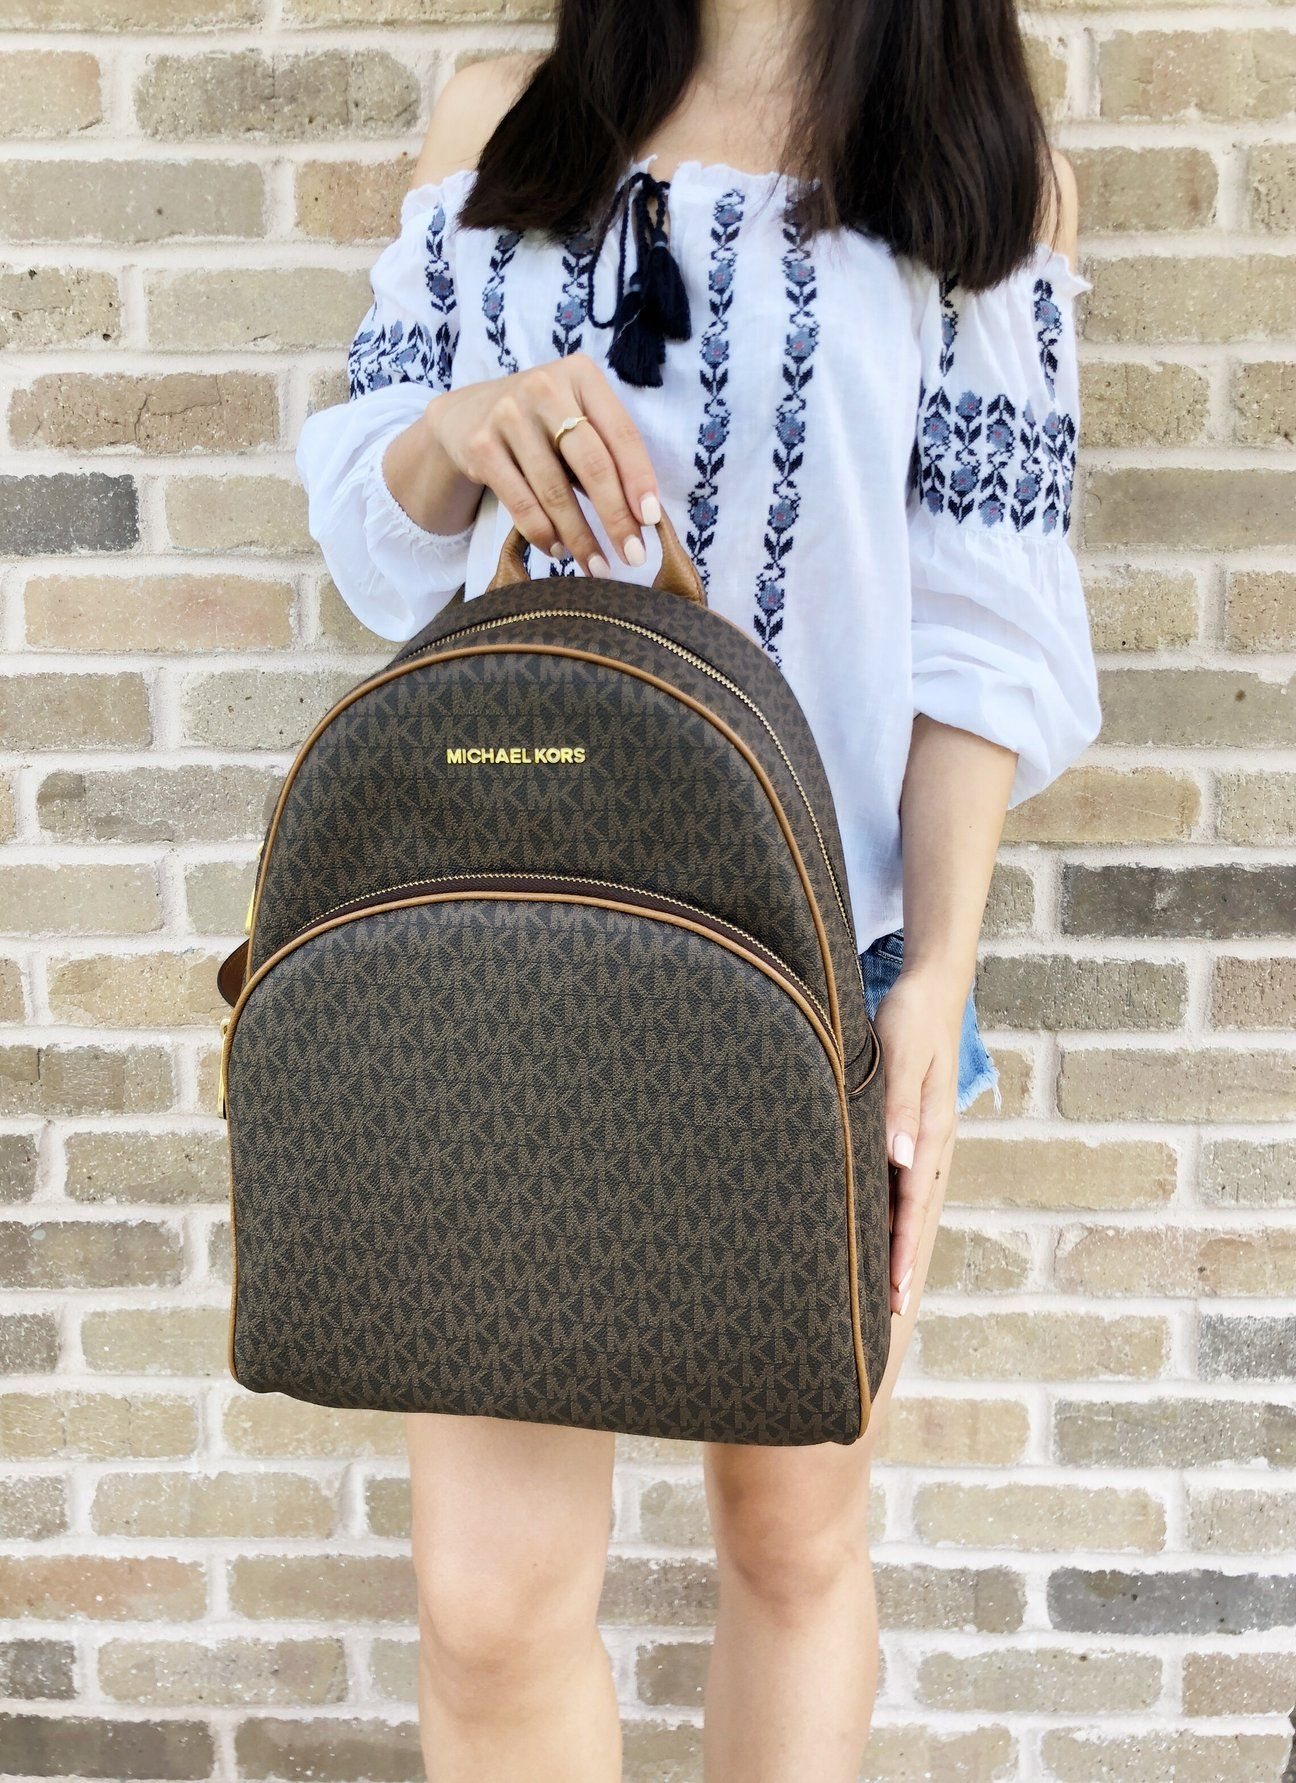 dc561ac1927c Michael Kors Abbey Large Backpack Brown MK Signature PVC Leather 2018 Fall  - Gaby s Bags